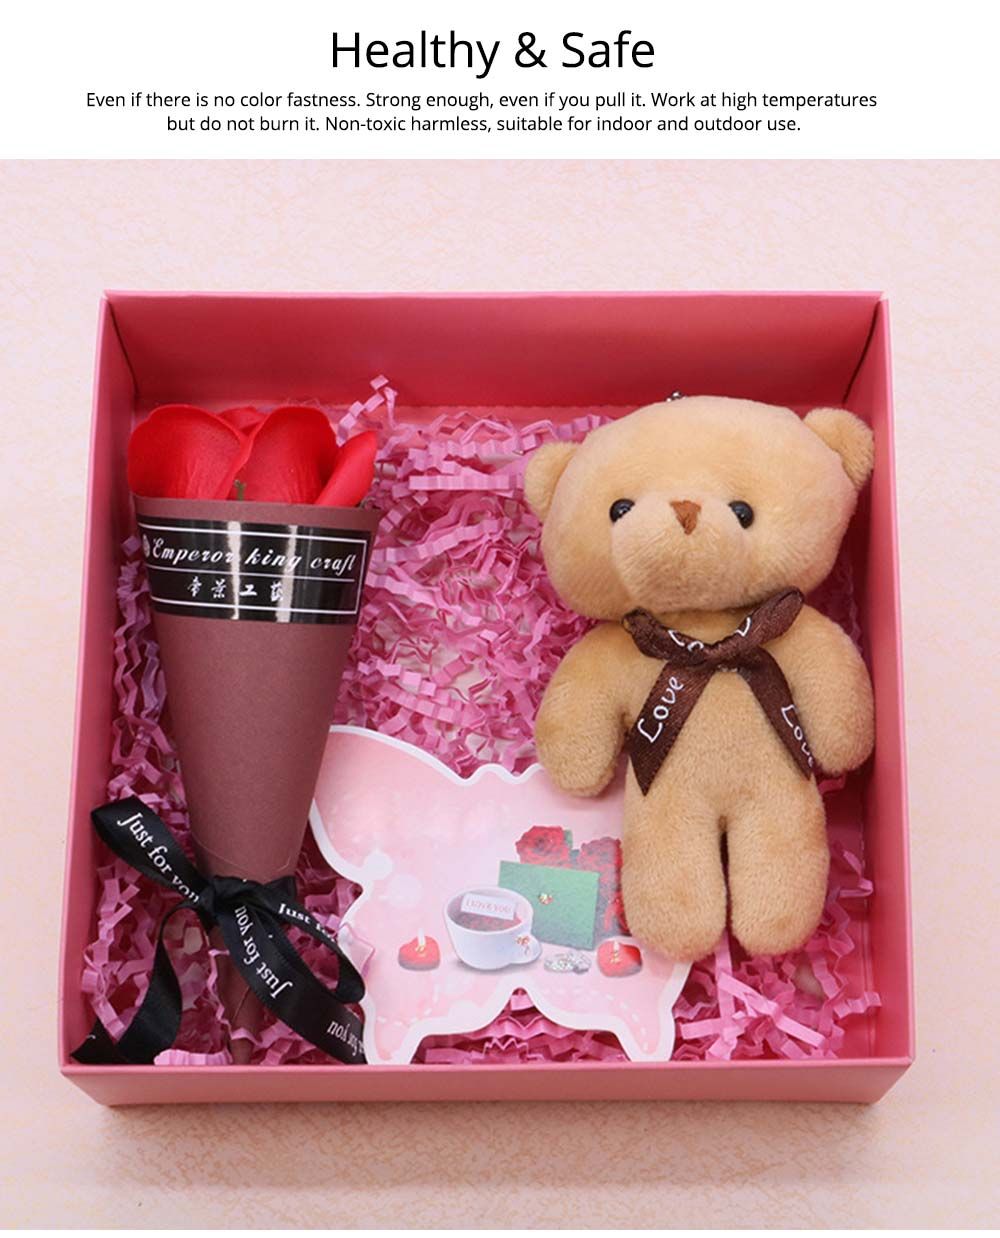 Preserved Fresh Flower with Lovely Bear Gift Box for Valentine's Day, Wedding Parties, Romantic Gift Perserved Fresh Flower Bear Box 2